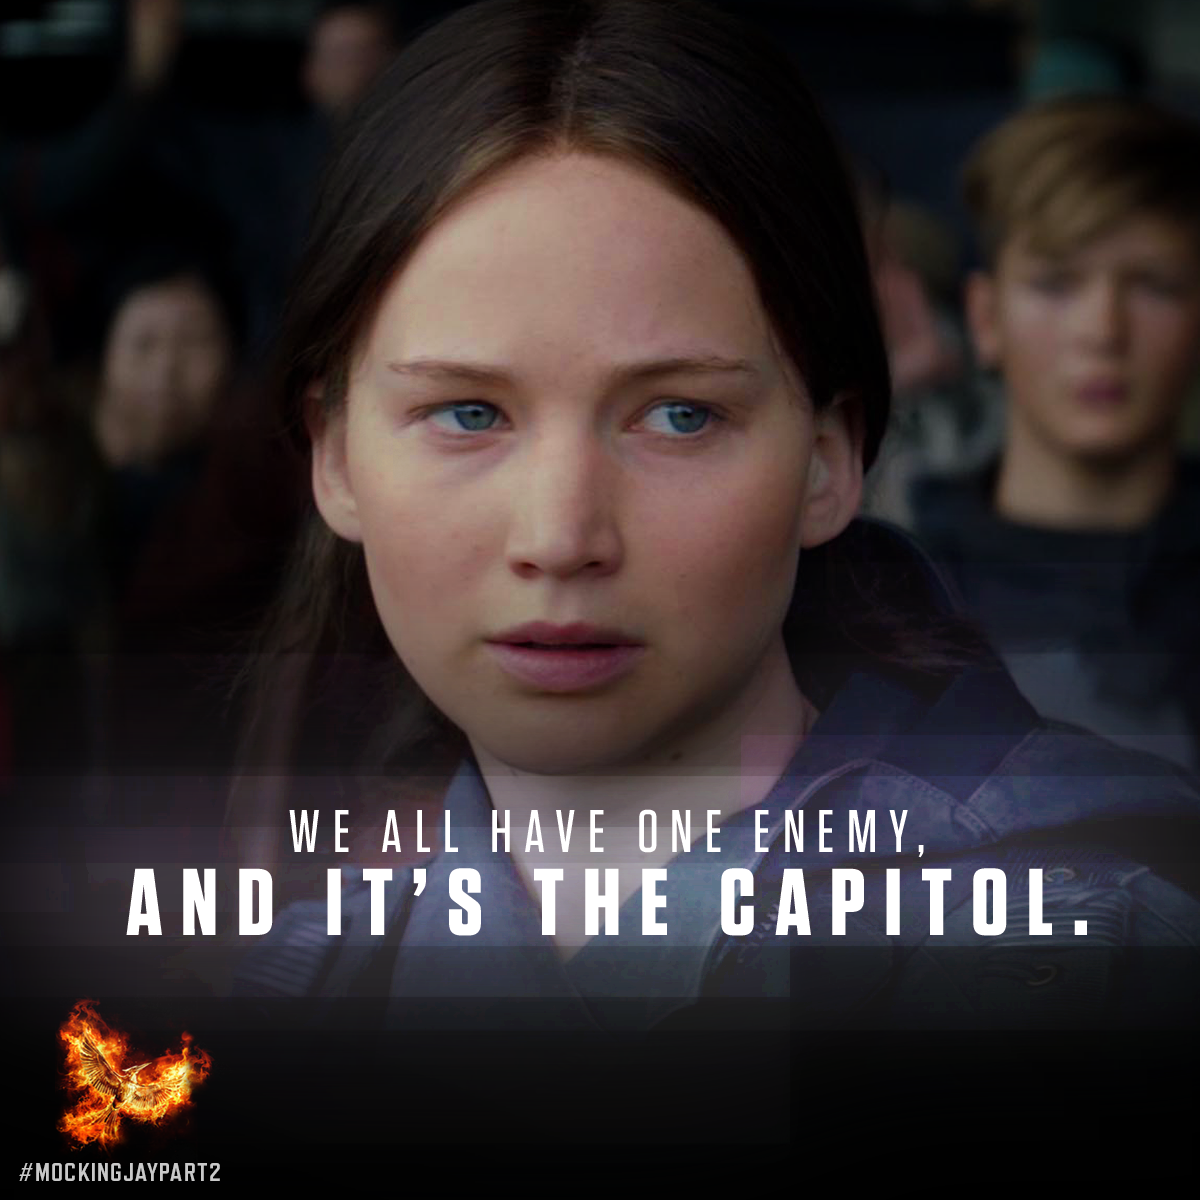 hunger games power Why the message of the hunger games films is dangerous  the hunger games undoubtedly portrays adult themes  this relationship with power is appealing,.